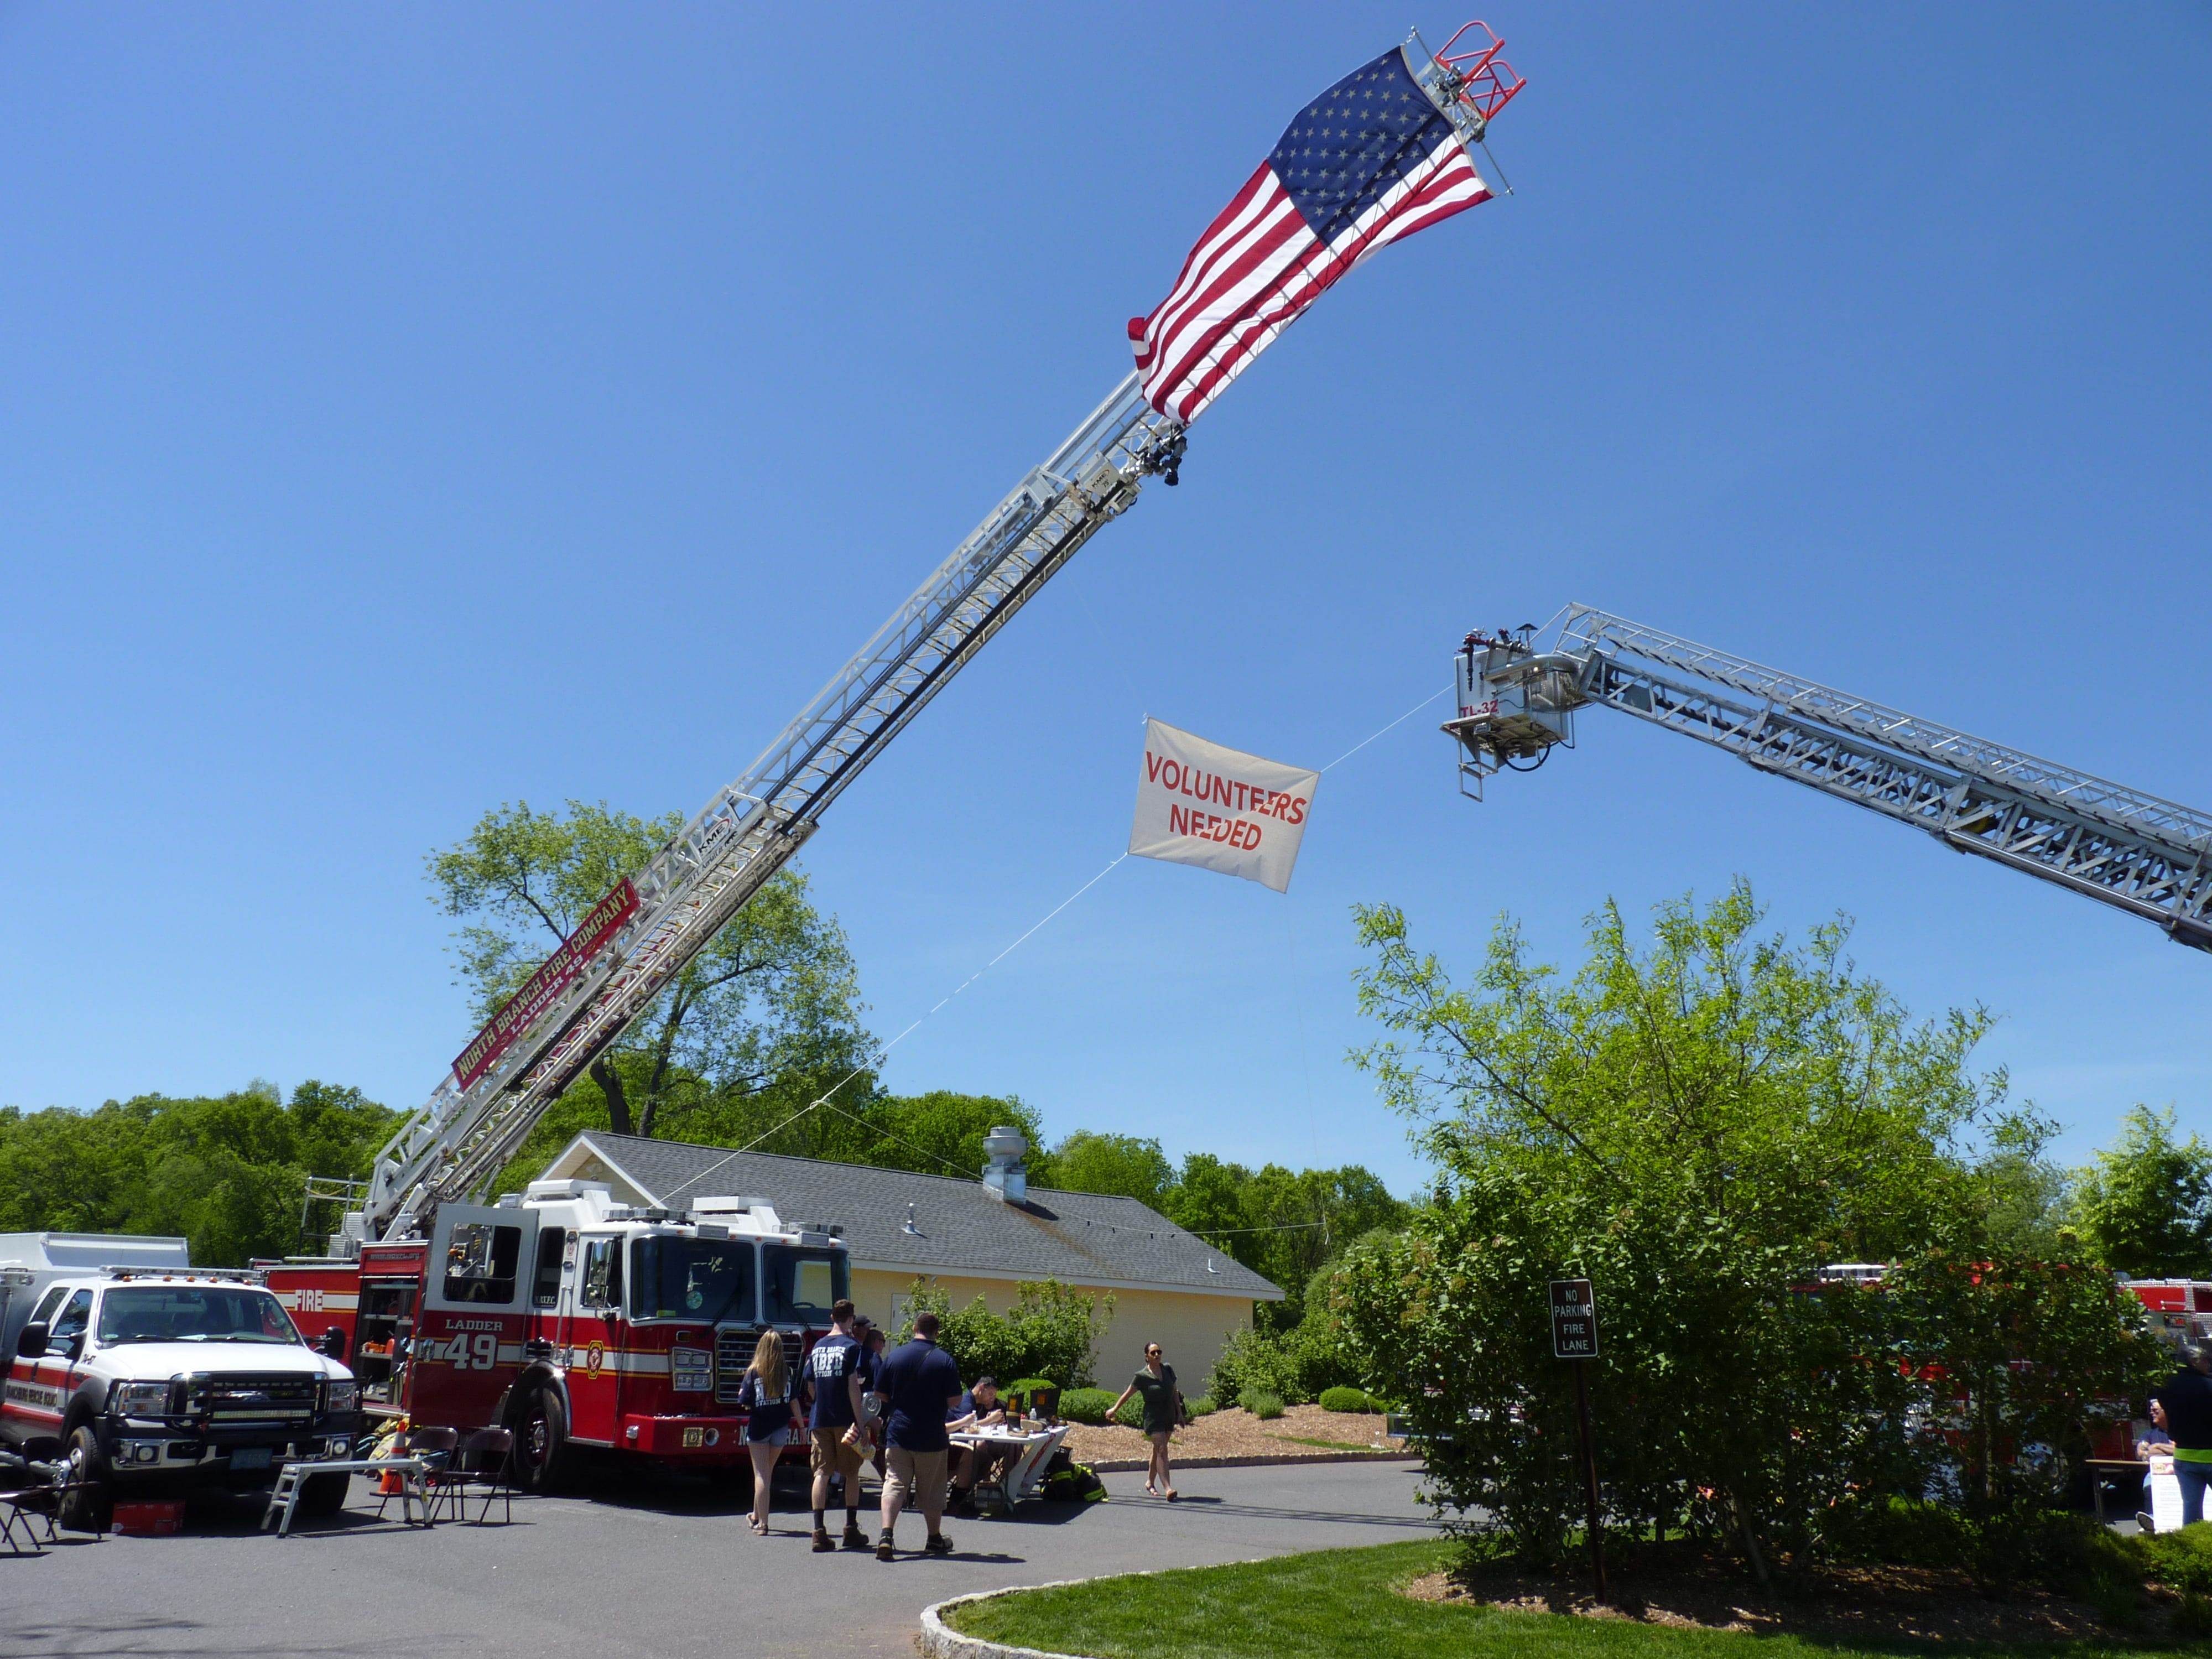 Several hundred people came out to White Oak Park in Branchburg on Saturday, May 11 to enjoy live music, Mother's Day sales and food from dozens of food trucks for the Food Truck and Music Festival organized by Just Jersey Fest.